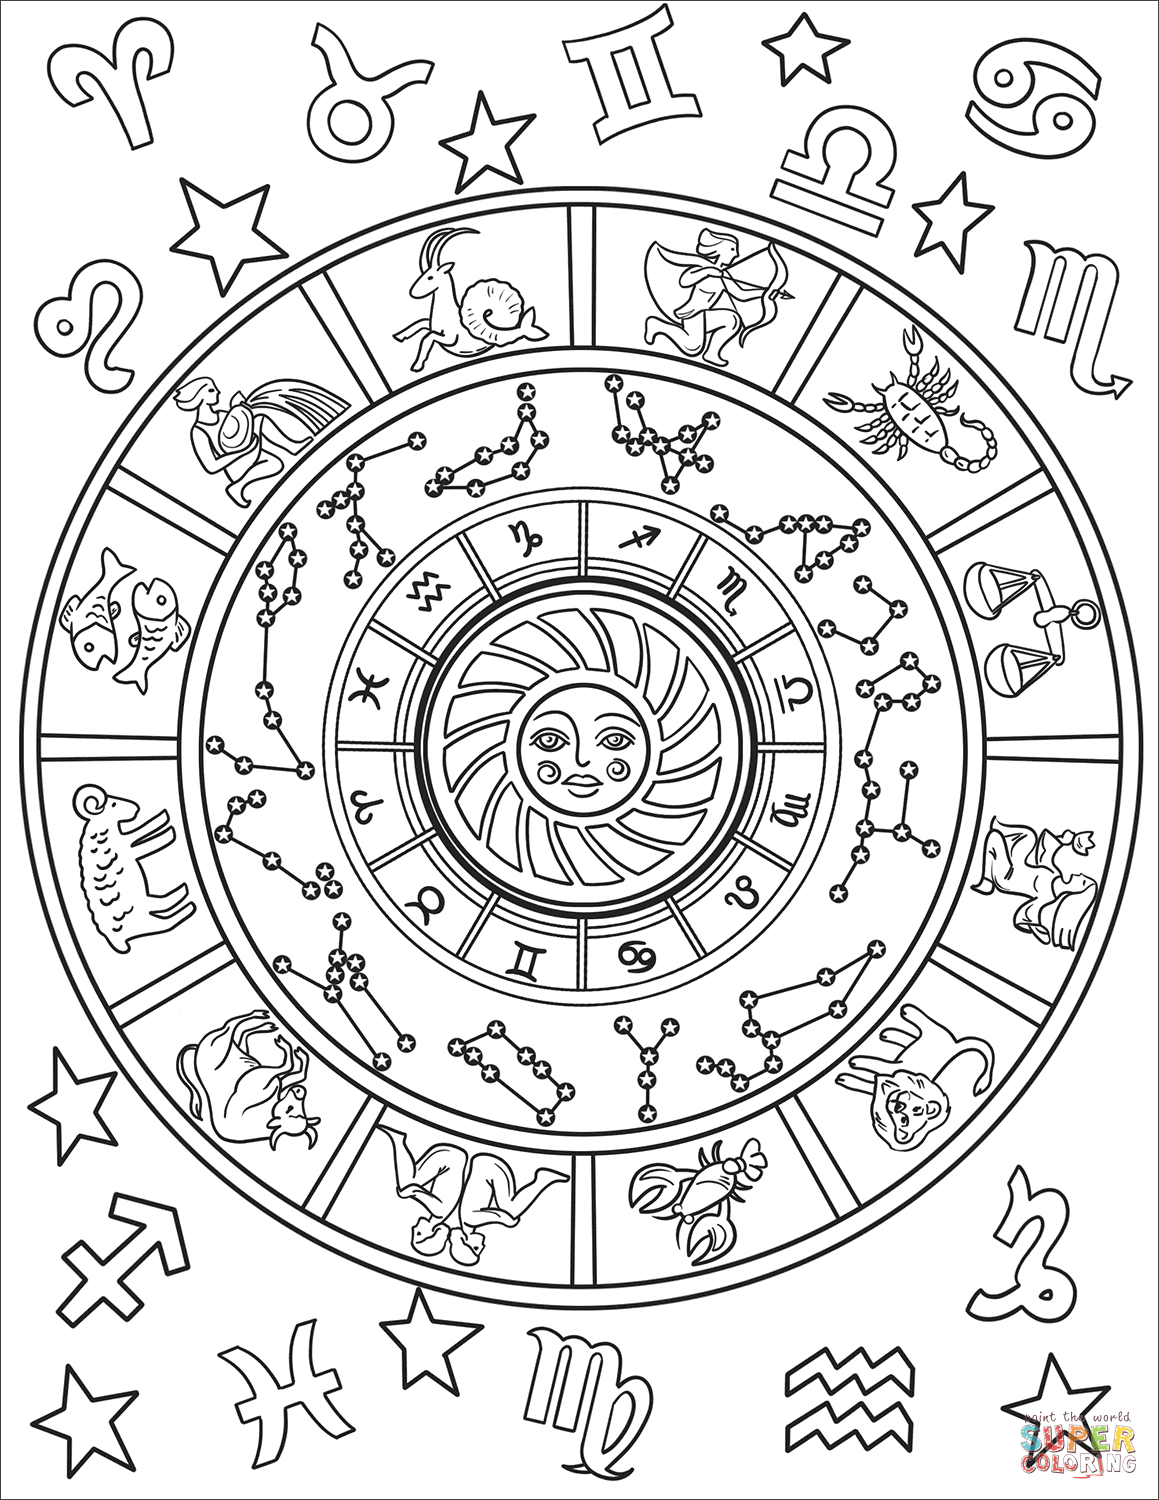 All Zodiac Signs Coloring Page